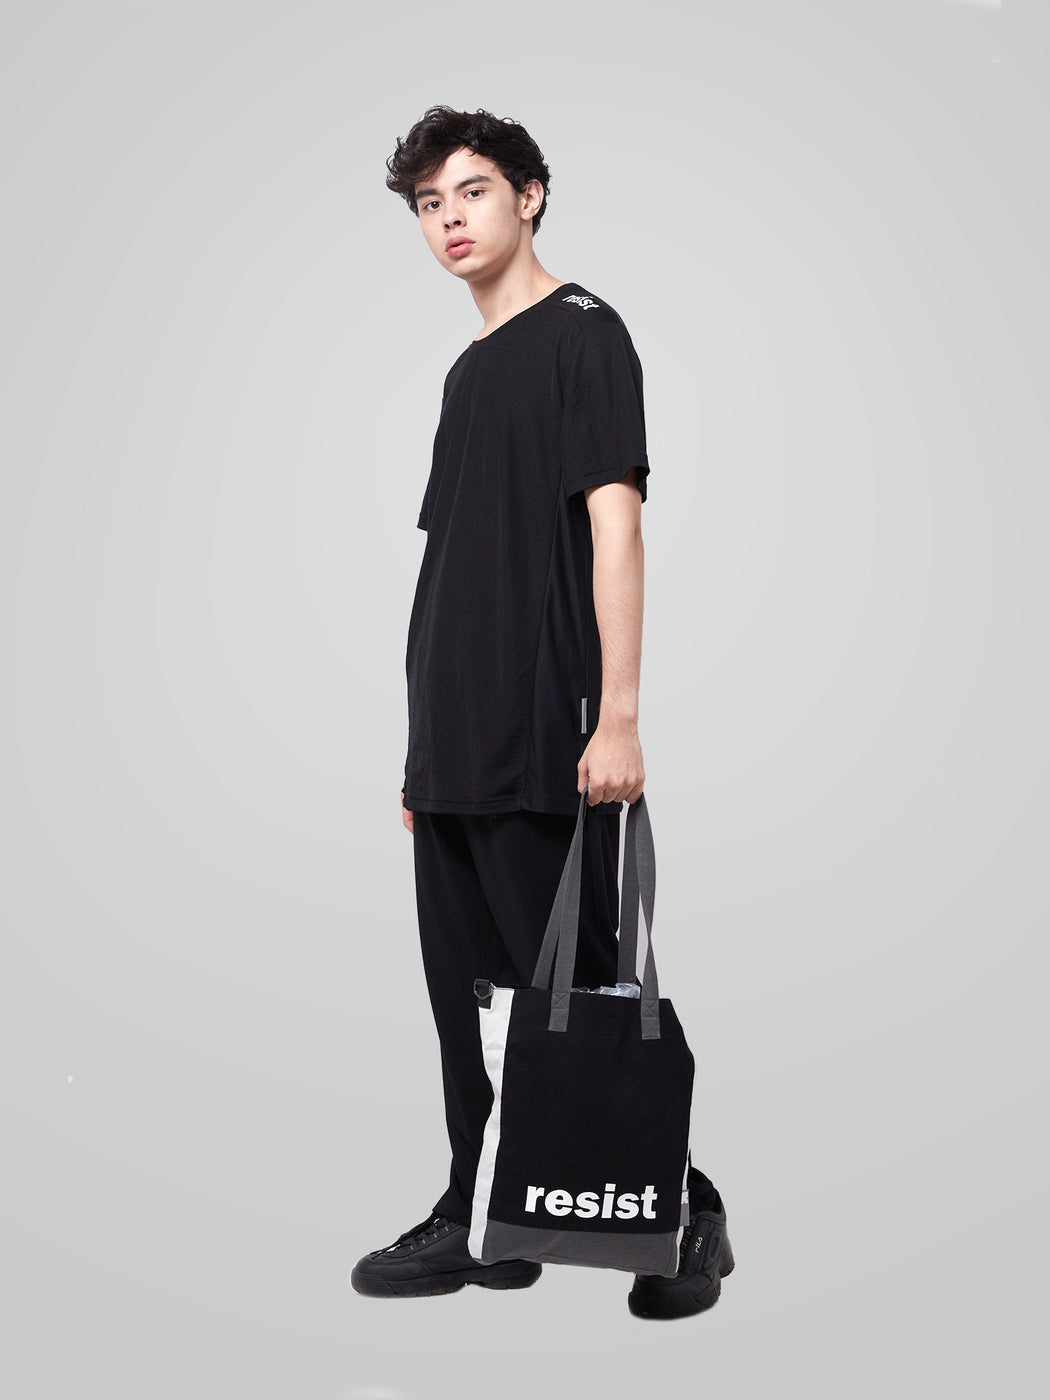 Unisex Resist 4 Way Tote Bag